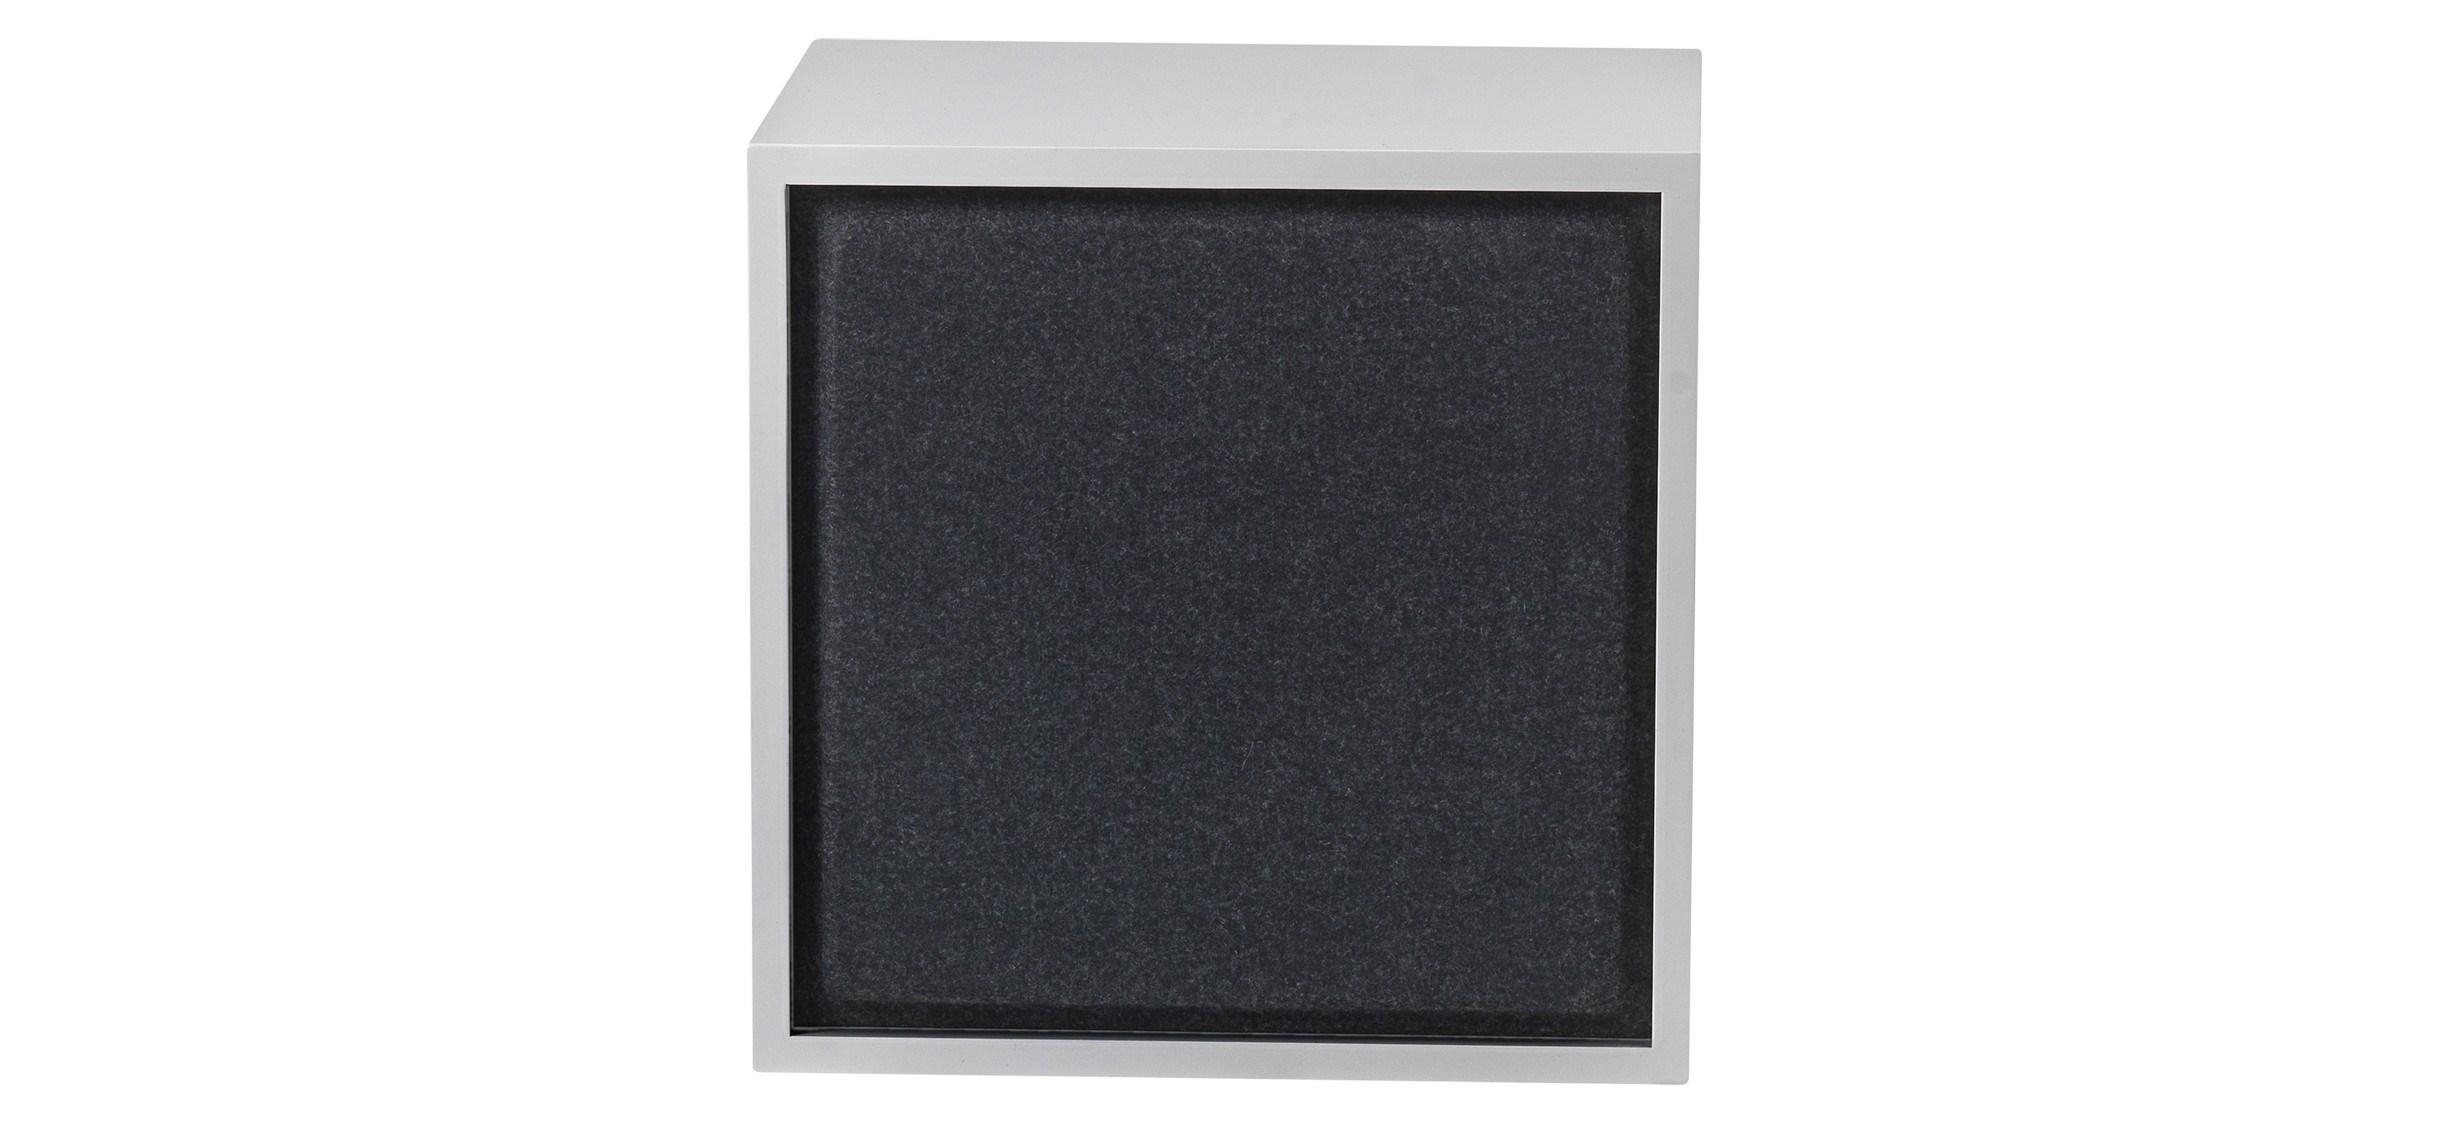 Muuto Stacked Acoustic Panel · Mellem · Sort